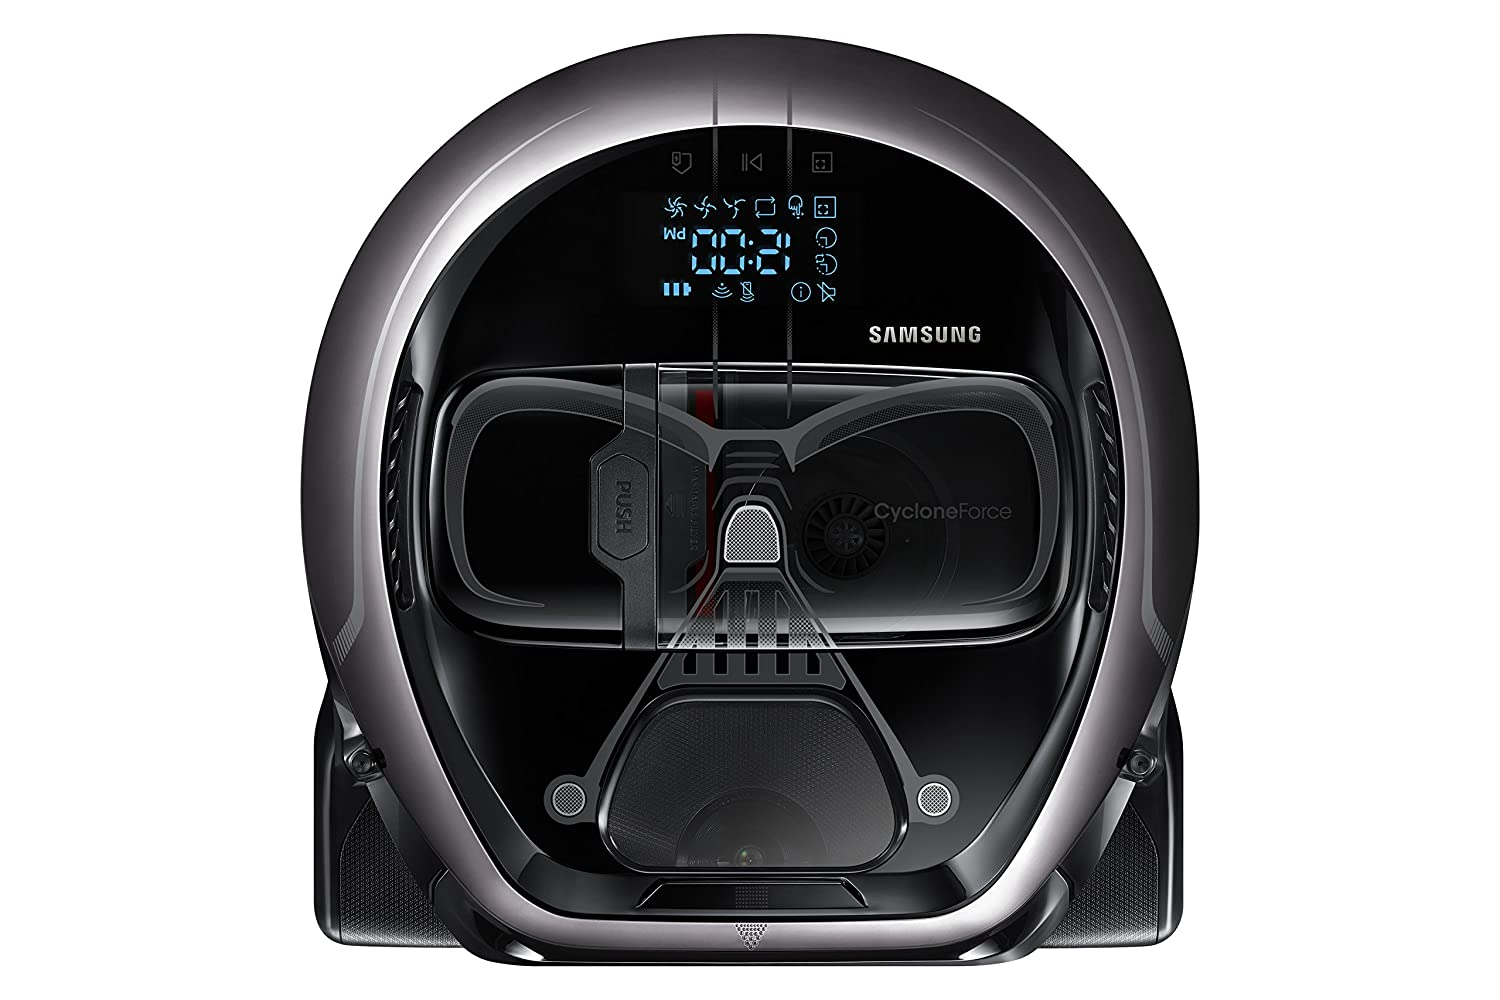 Samsung POWERbot Star Wars Darth Vader Robot Vacuum Cleaner